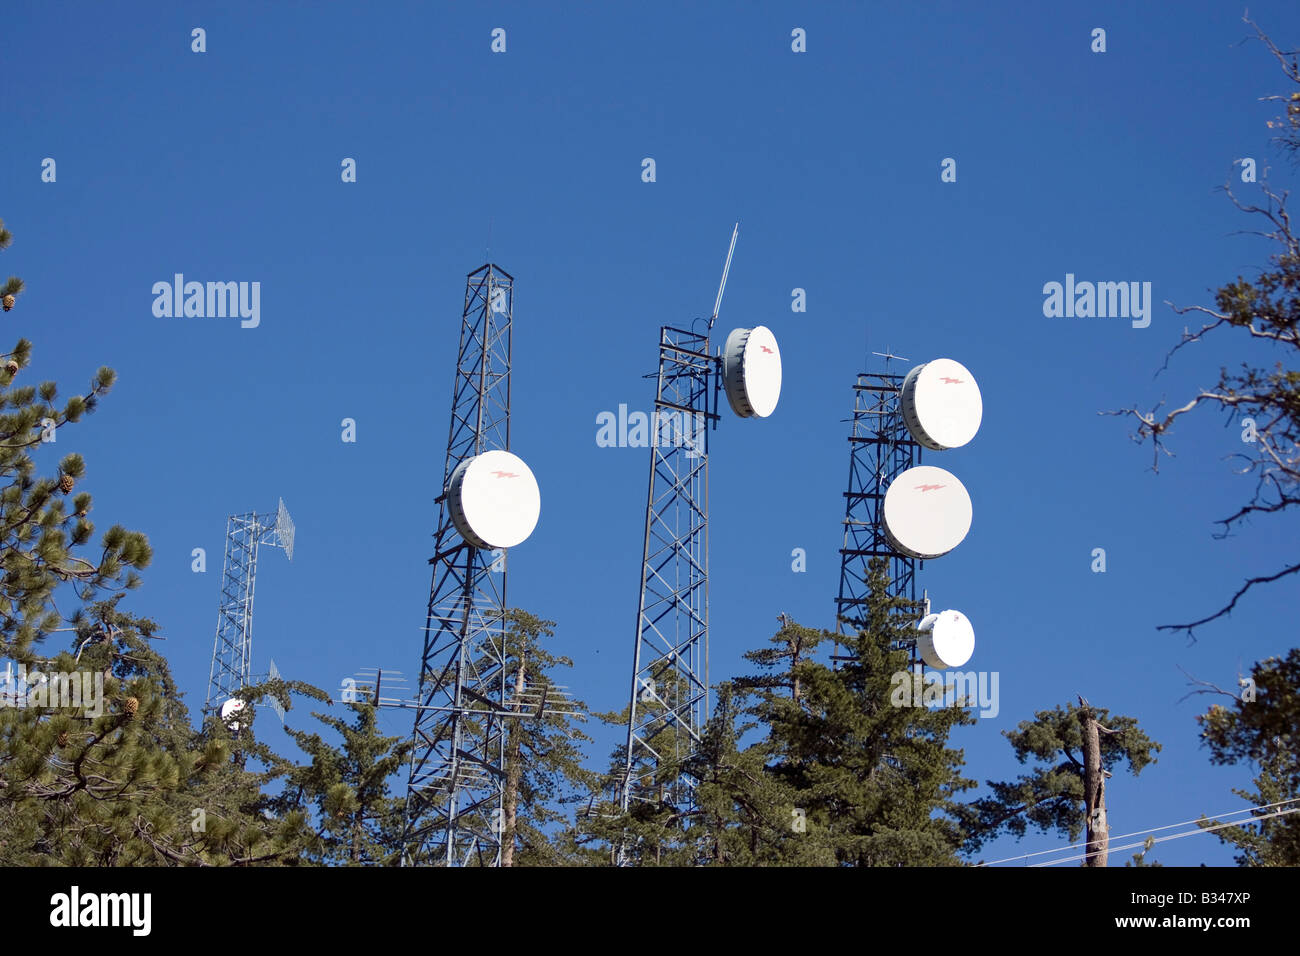 One of the many communication towers scattered across the world Stock Photo